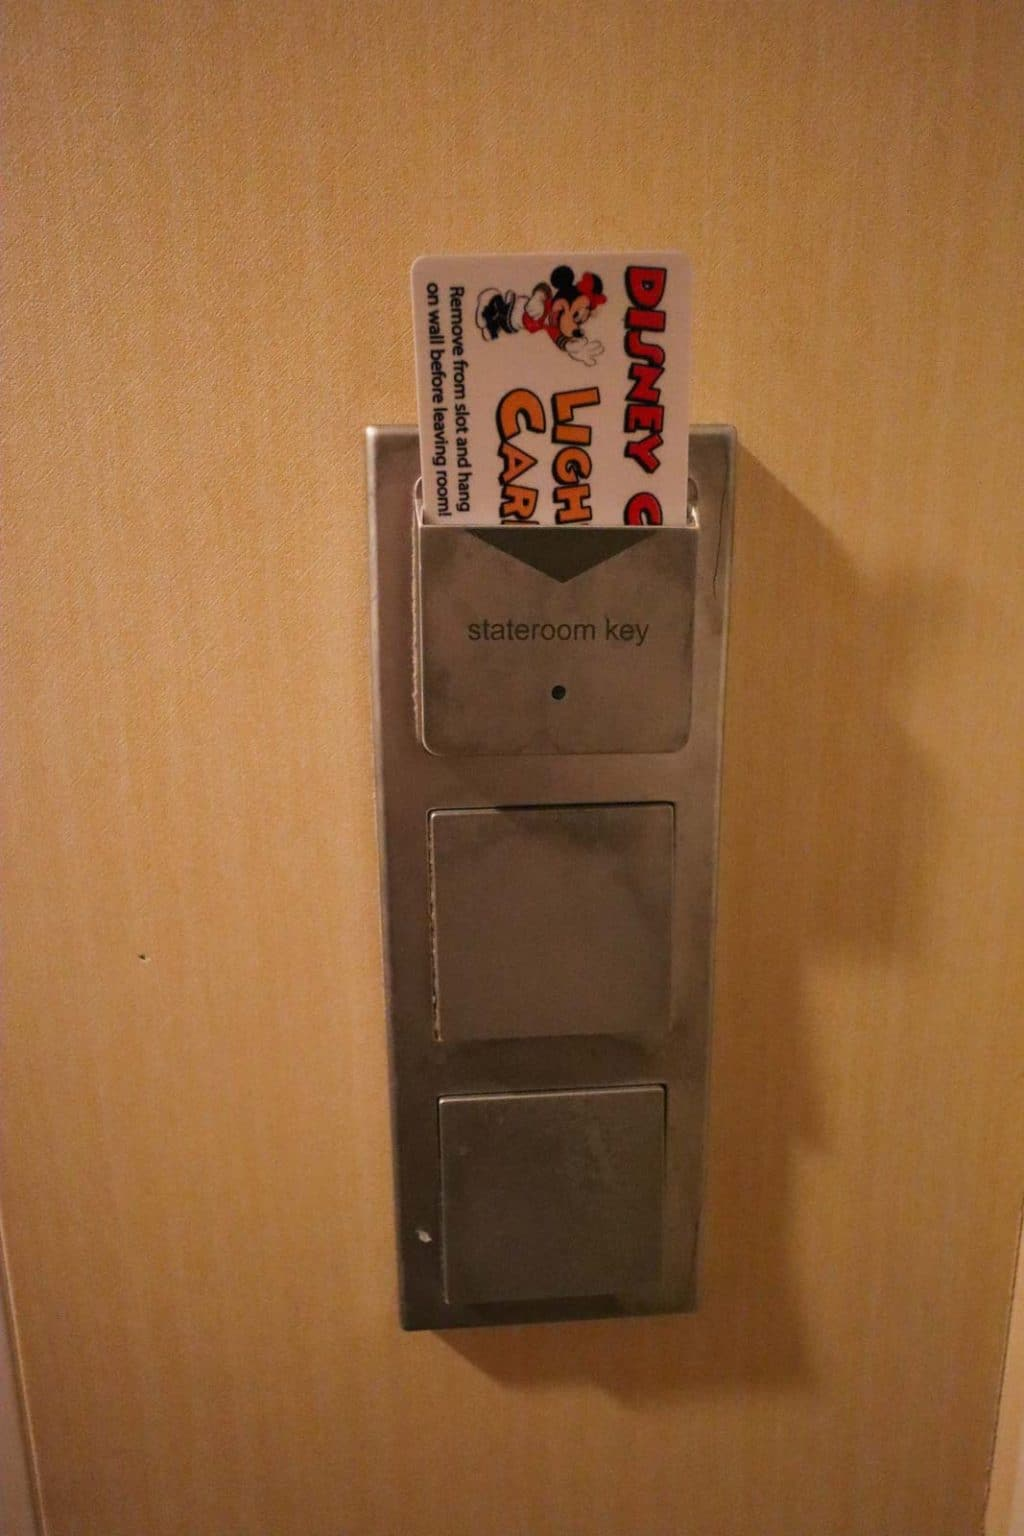 A card sticking in the light switch onboard a Disney cruise.